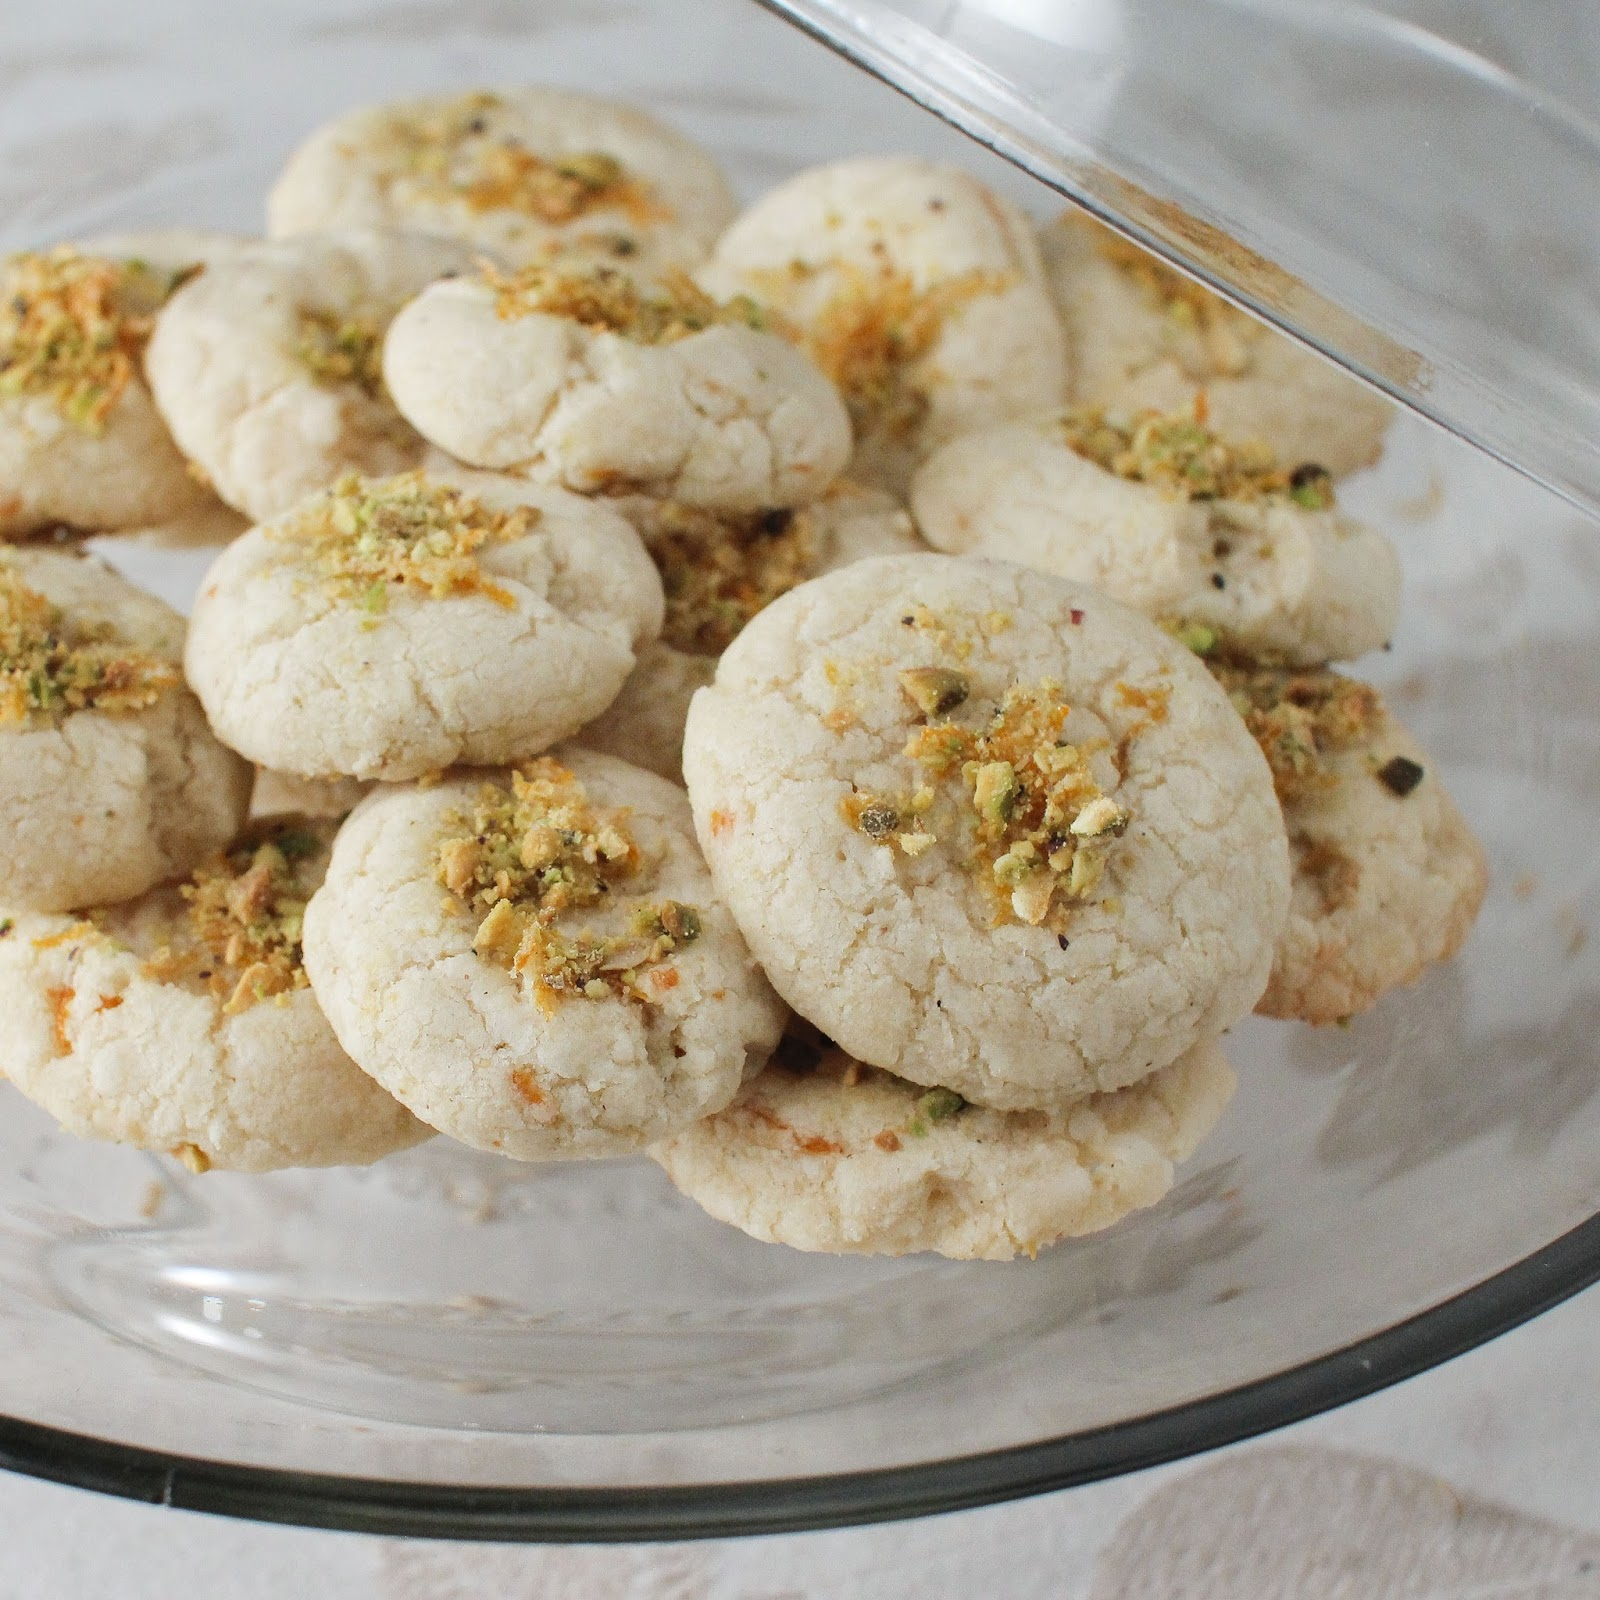 ... Of Indian Cooking: Orange Cardamom Holiday Cookies for Kids Cancer